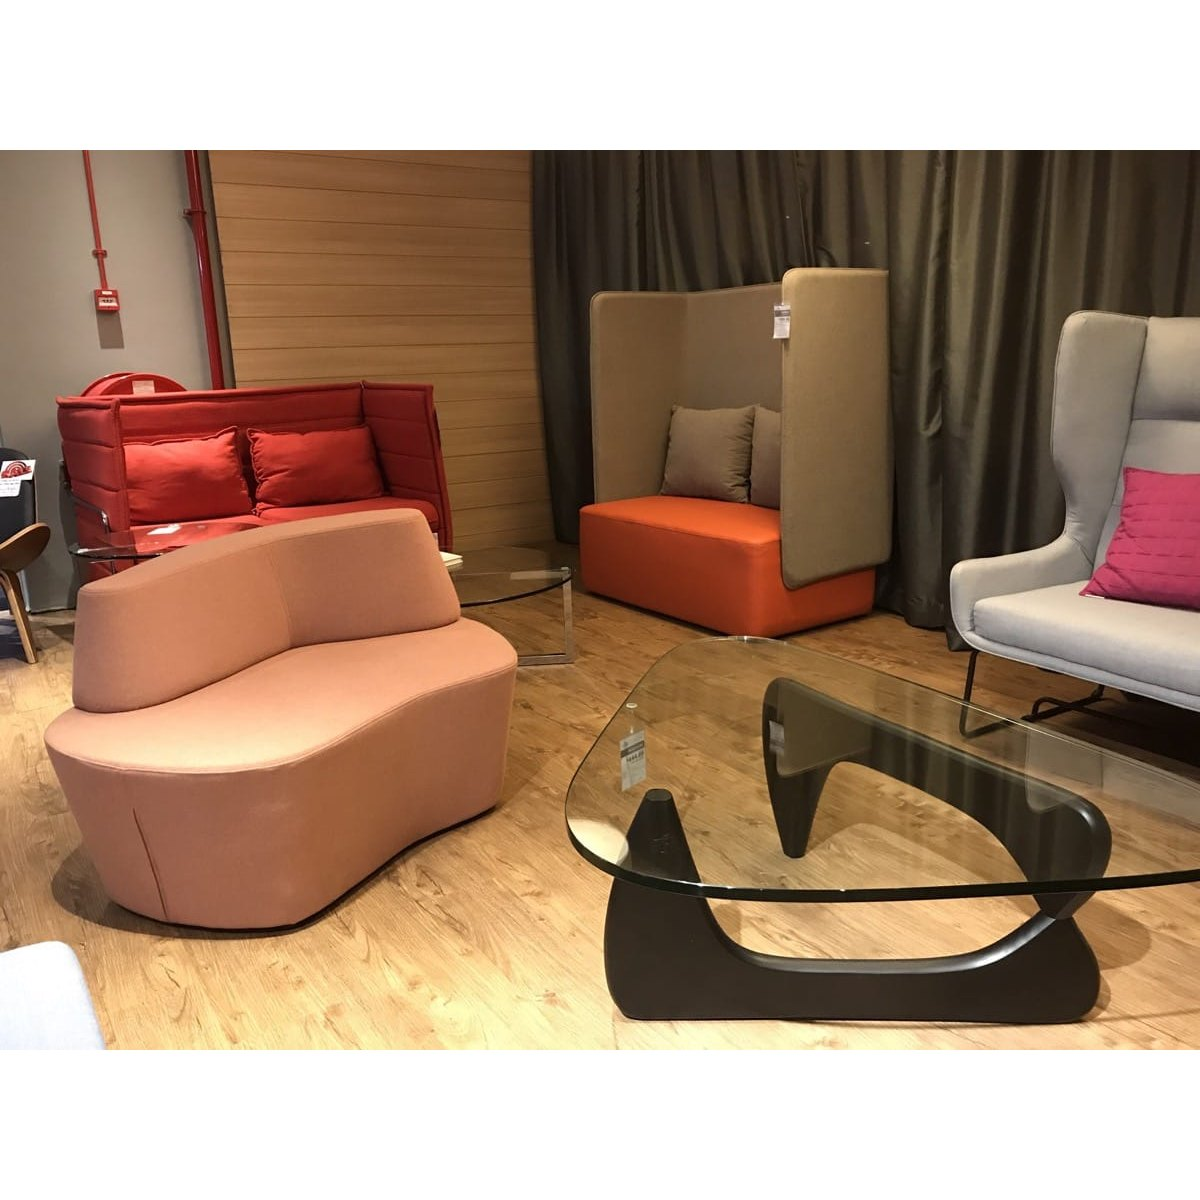 Knight 2 Seater Sofa Comfort Design The Chair Table People